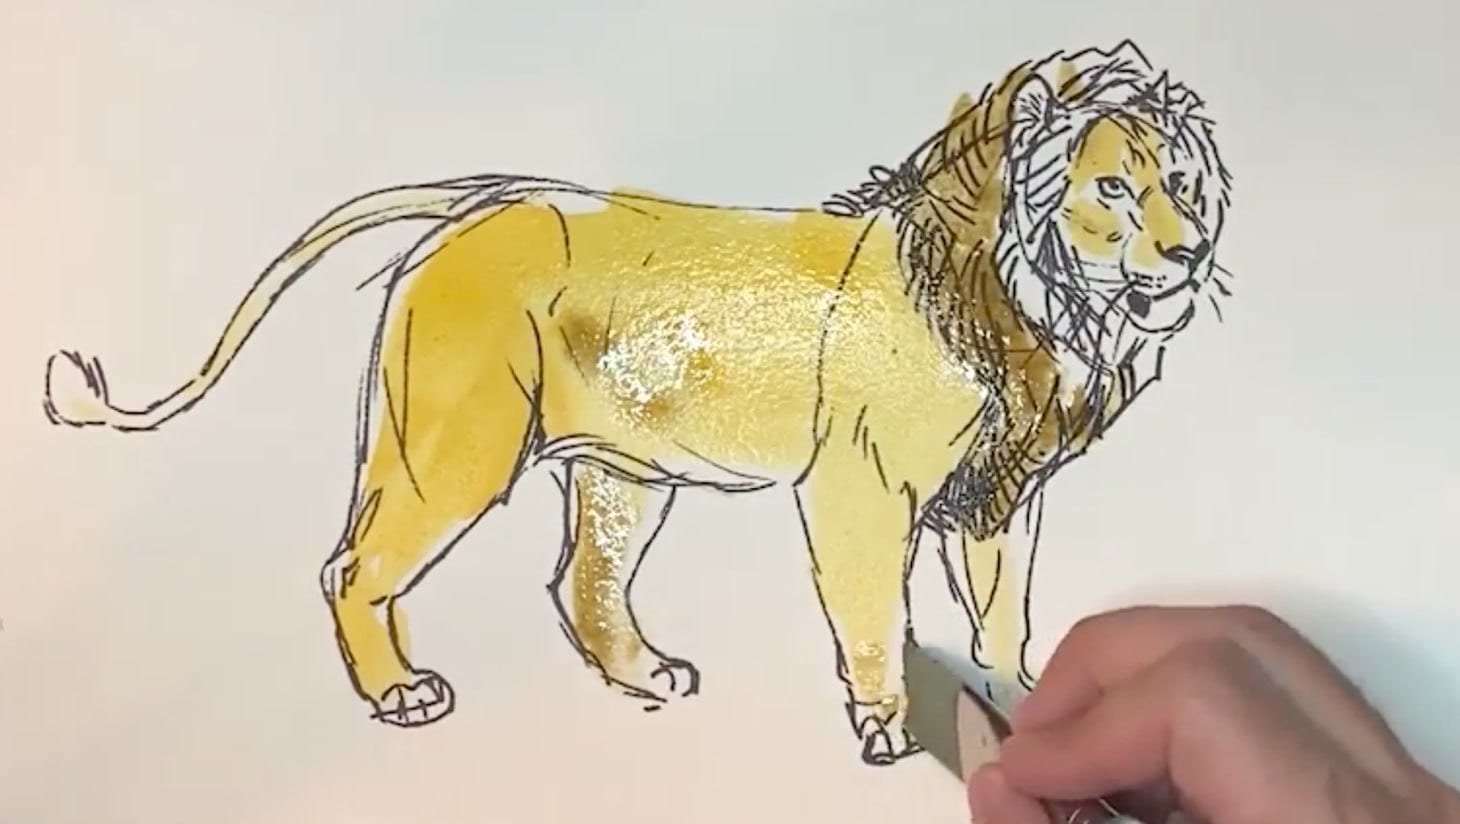 A sketch of a lion